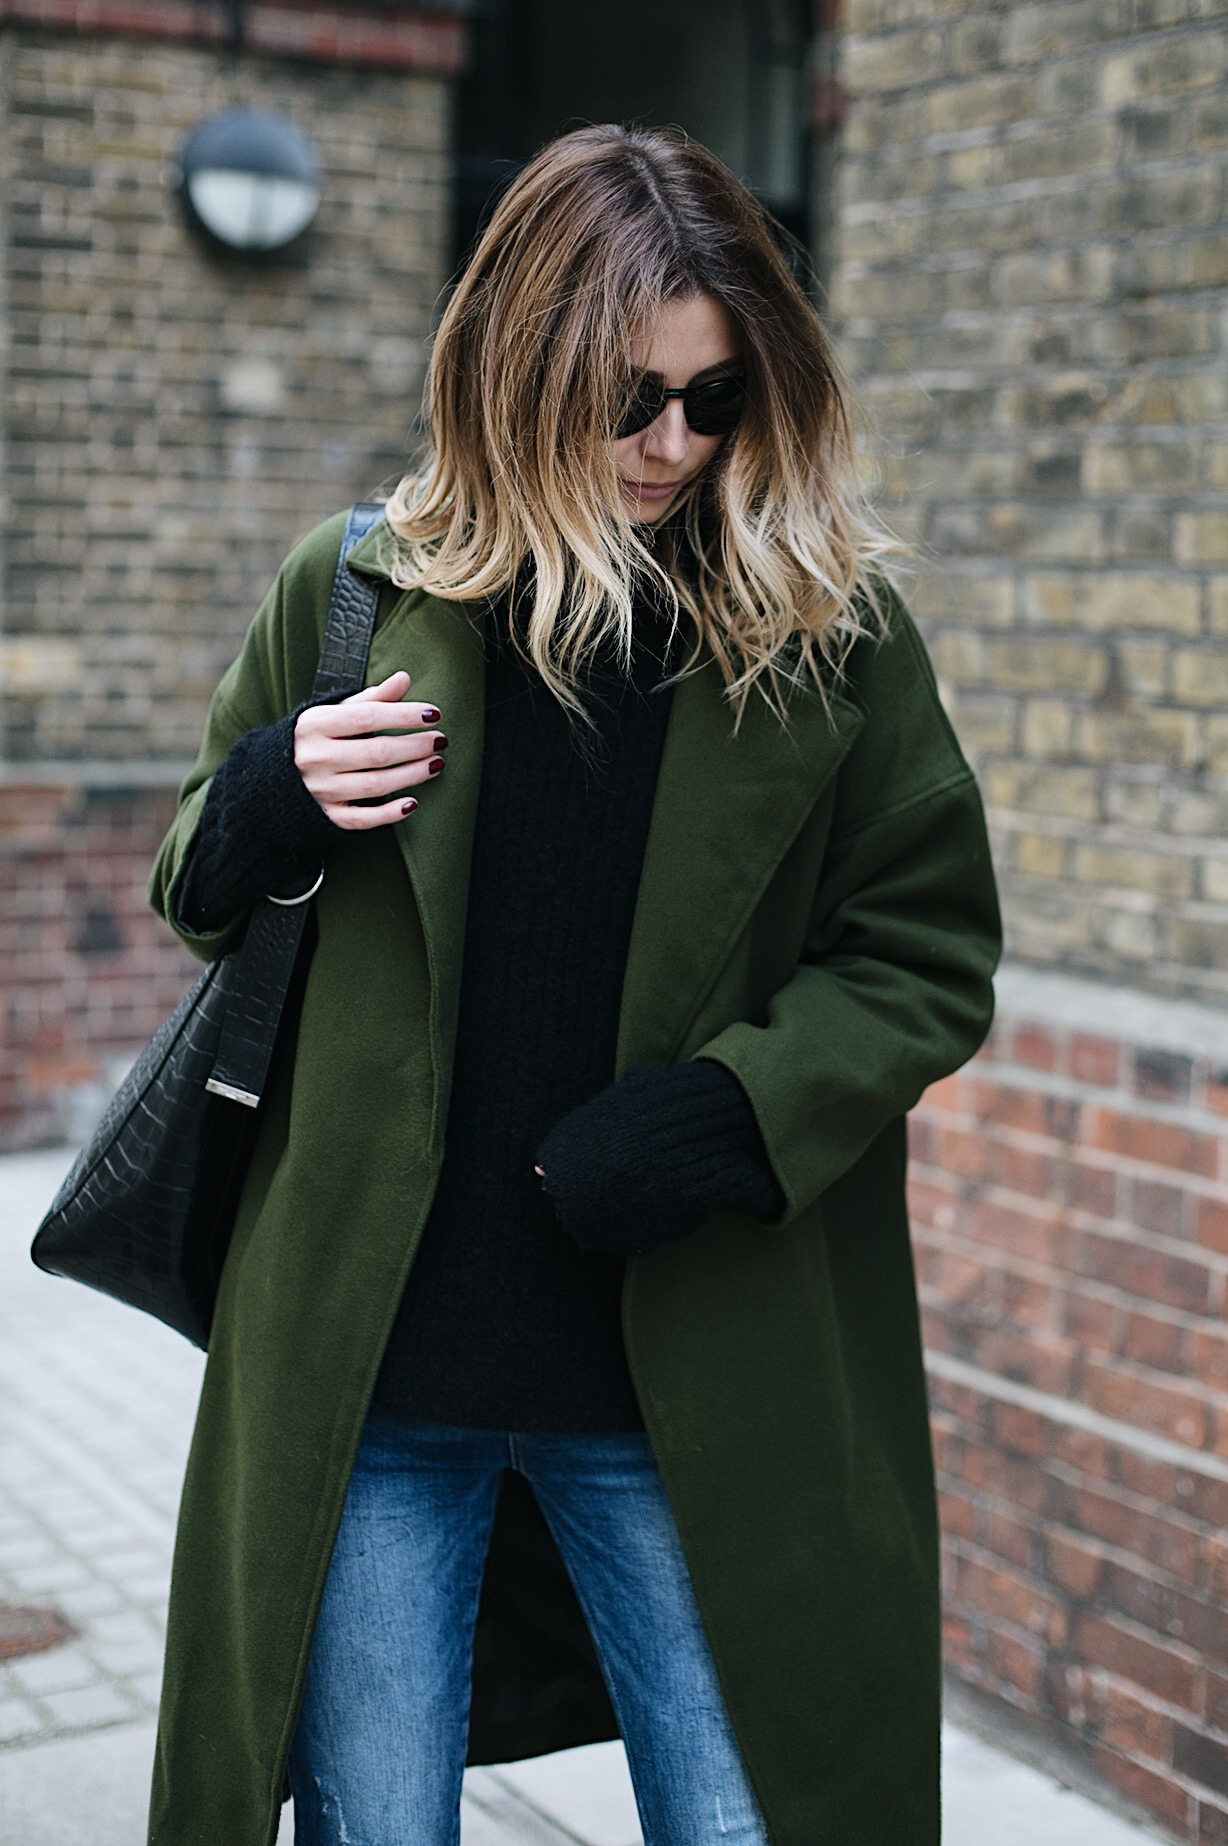 khaki coat, black sweater, skinny jeans, black croc bag, balayage blonde hair, chic winter outfit